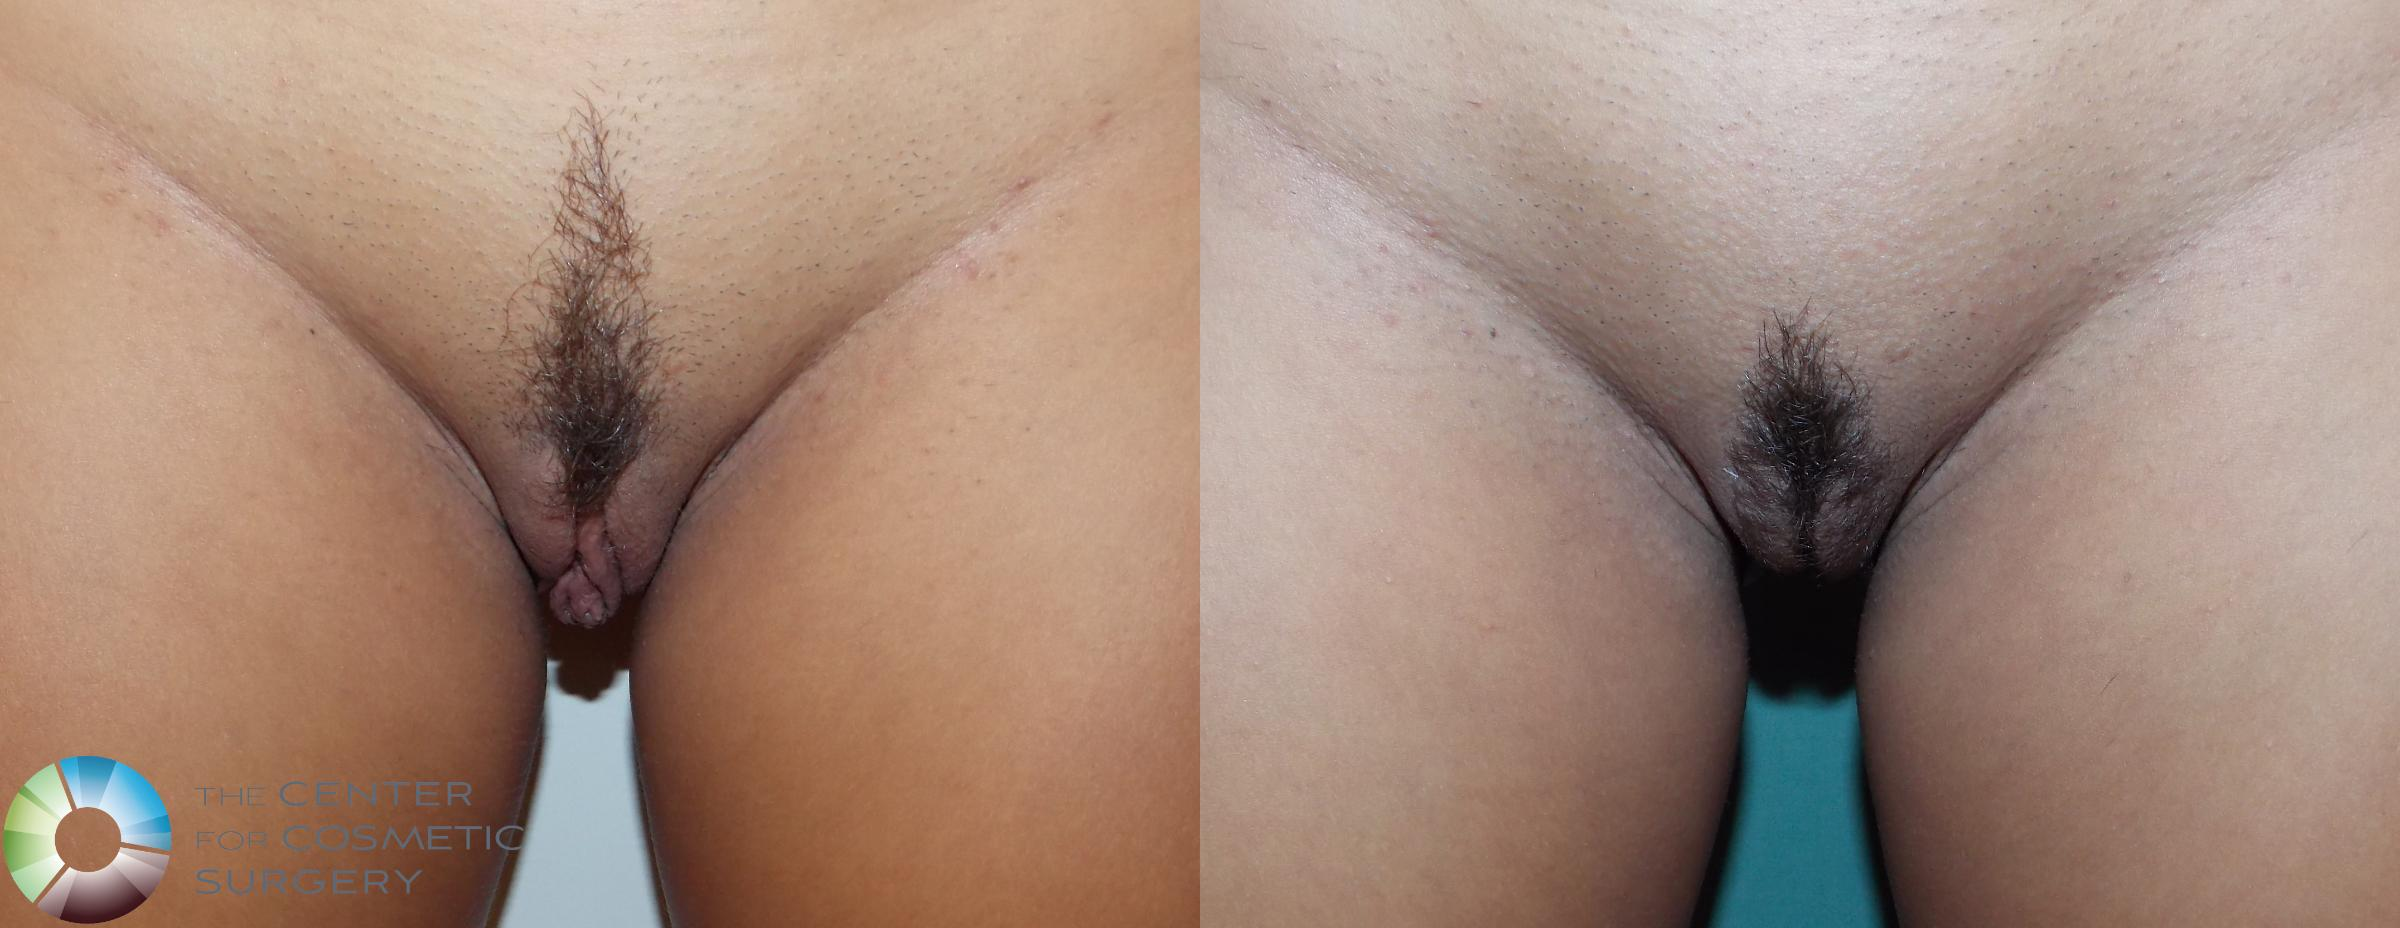 Labiaplasty Case 739 Before & After View #1 | Denver & Golden, CO | The Center for Cosmetic Surgery